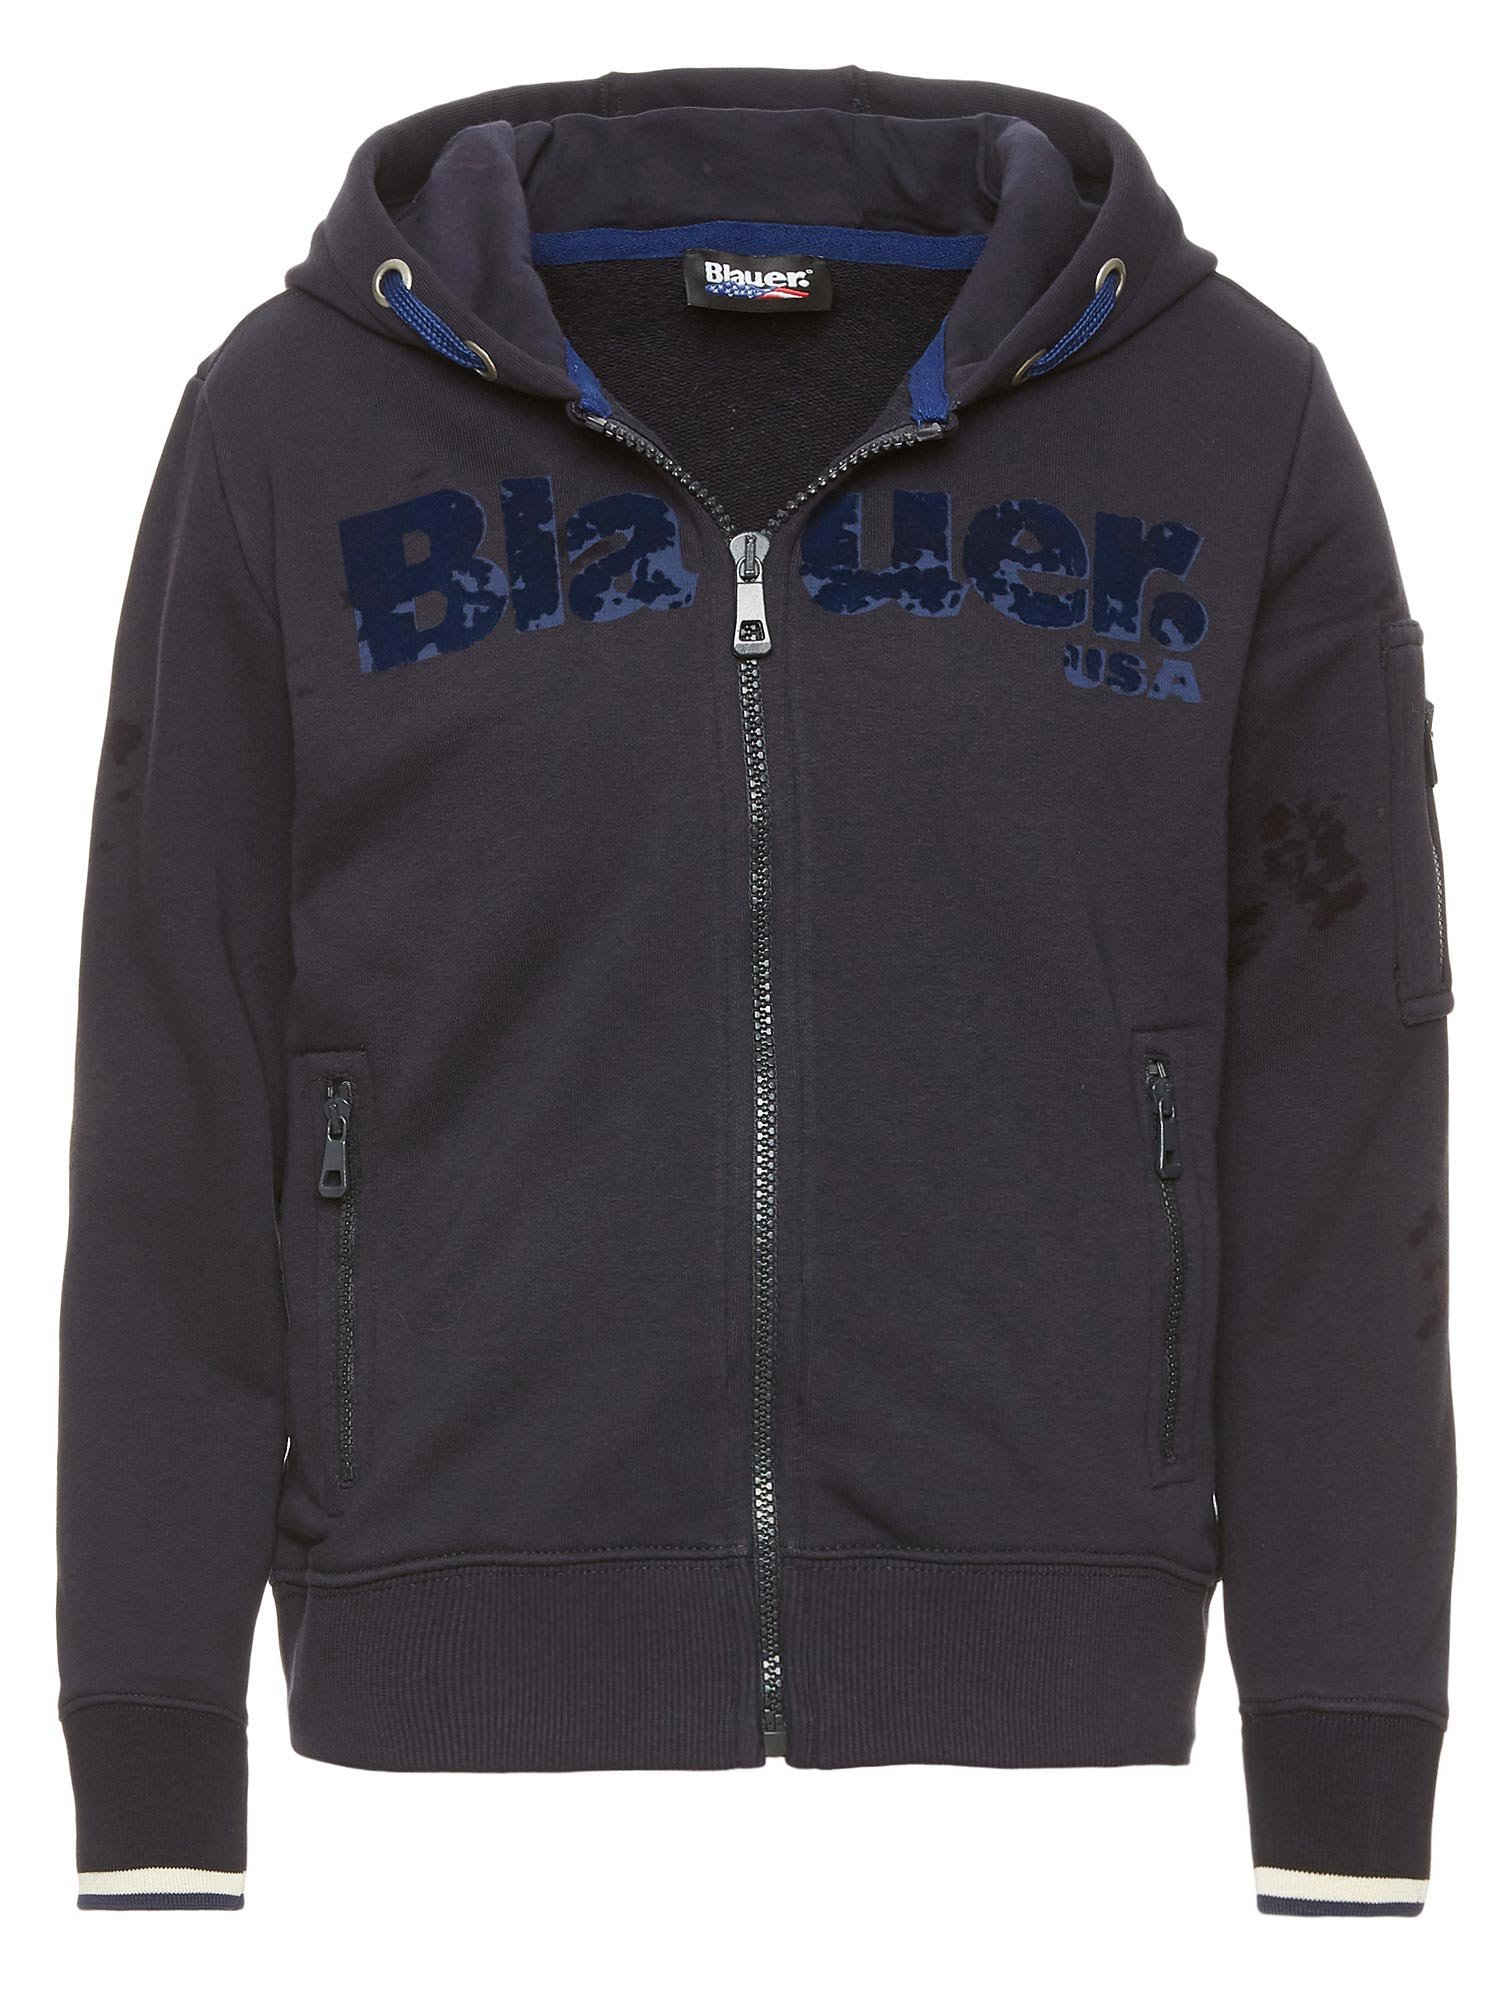 Blauer - KID'S OPEN SWEATSHIRT WITH HOOD - Dark Night Blue - Blauer